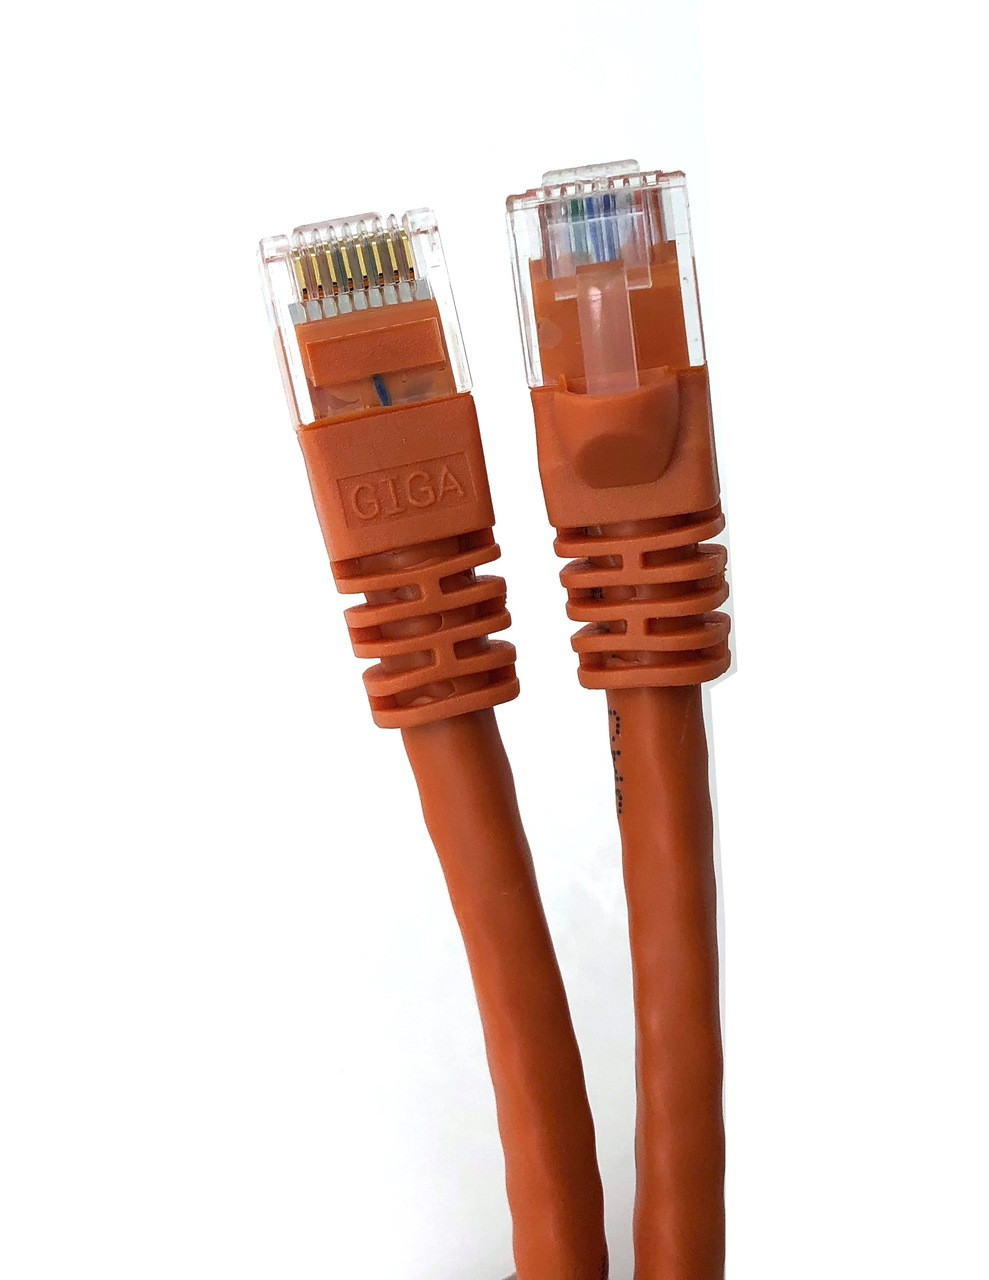 Category 6 UTP RJ45 Patch Cable Orange - 3ft